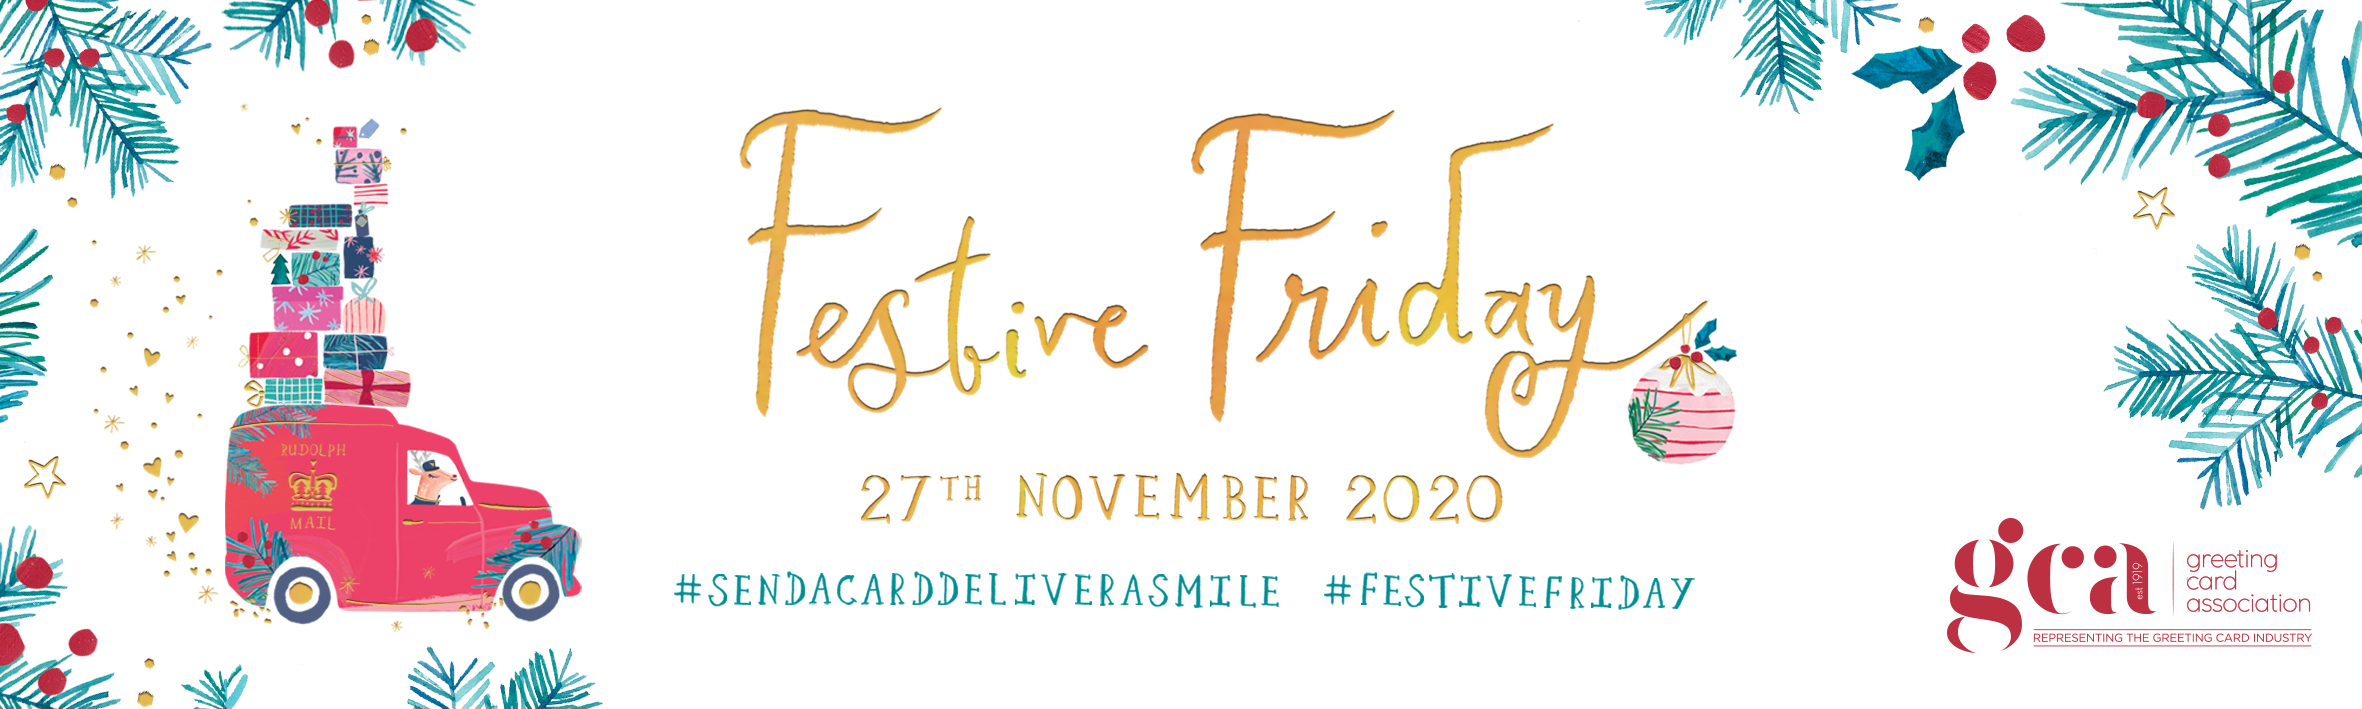 Above: Festive Friday (which fails this year on November 27) is one of many GCA in initiatives.